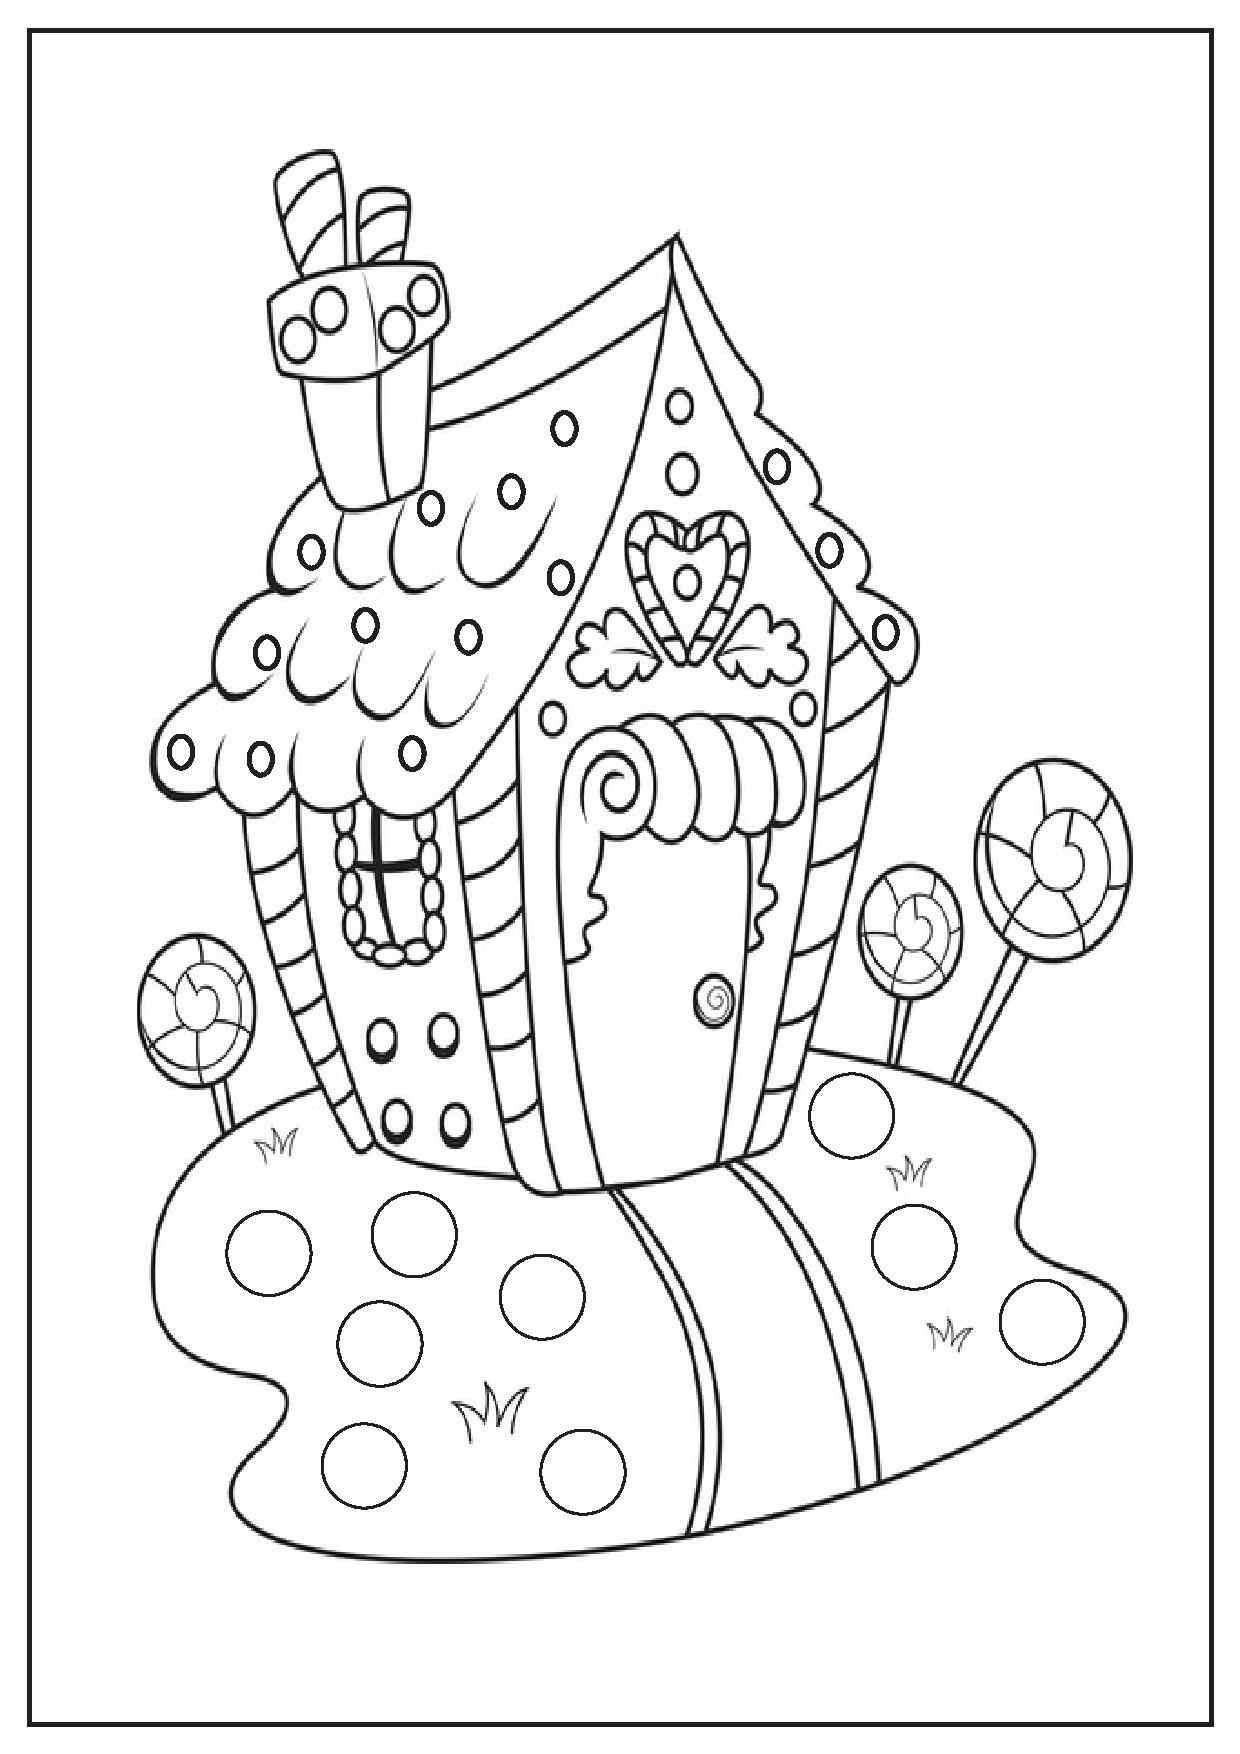 Christmas Worksheets Christmas Coloring Pages Printables Printable Christmas Coloring Pages Christmas Coloring Sheets Christmas Coloring Books